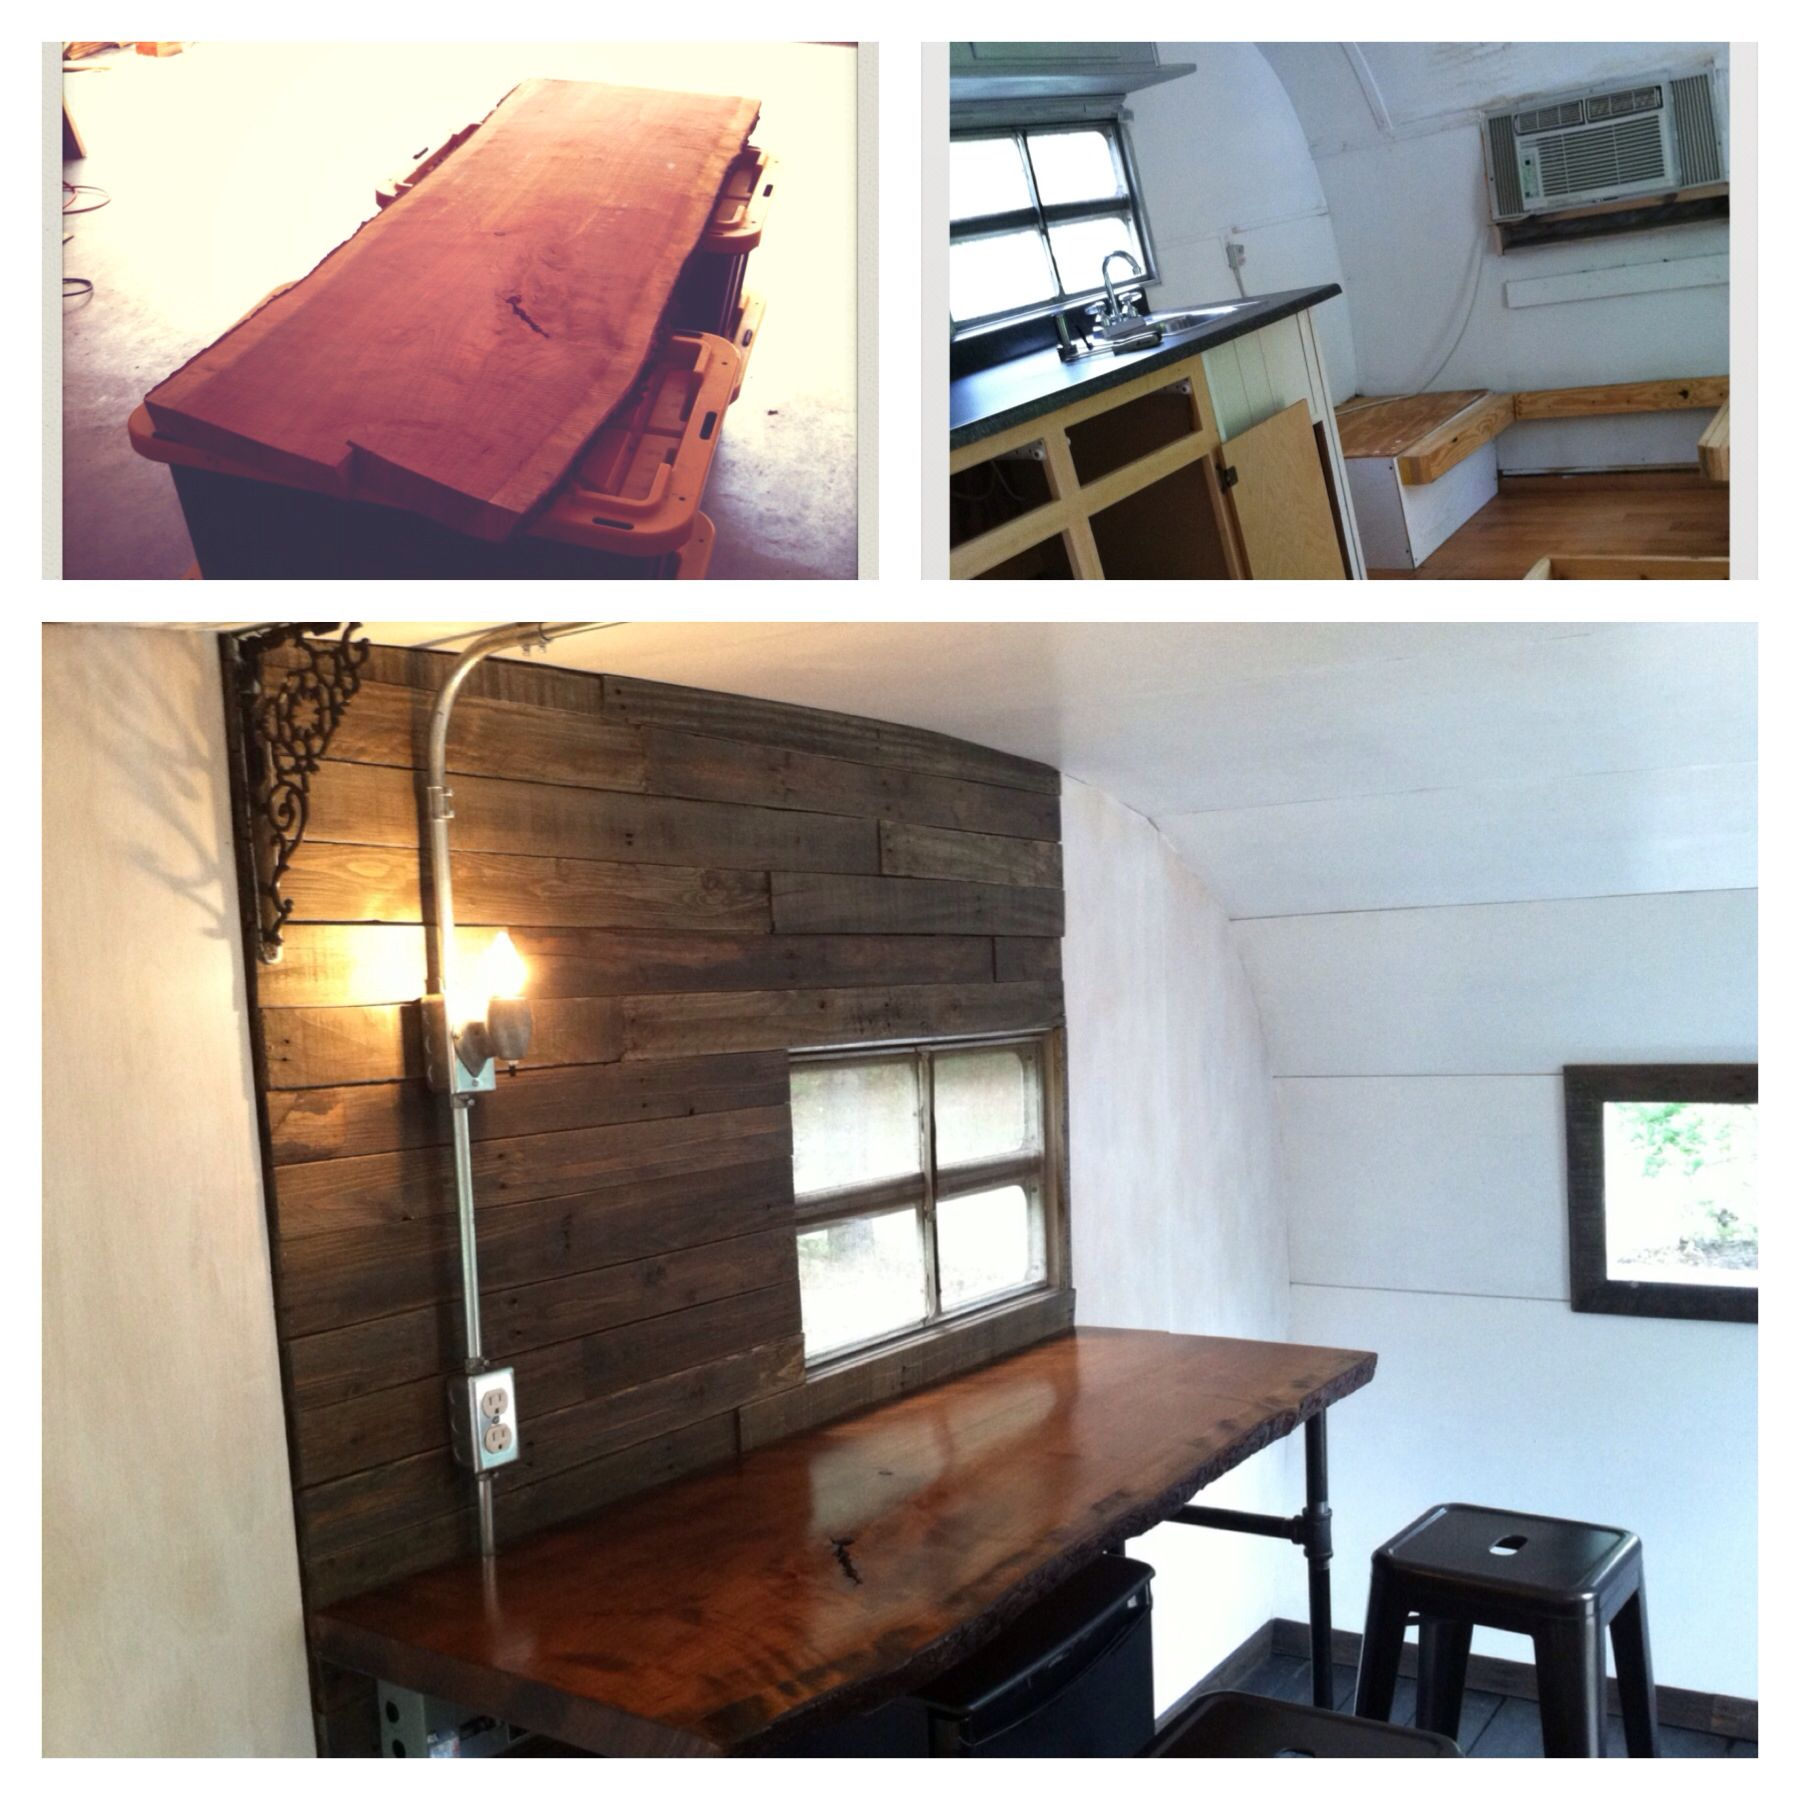 Vintage Camper Remodel Before After Live Edge Wood Counter Pallets Accent Wall